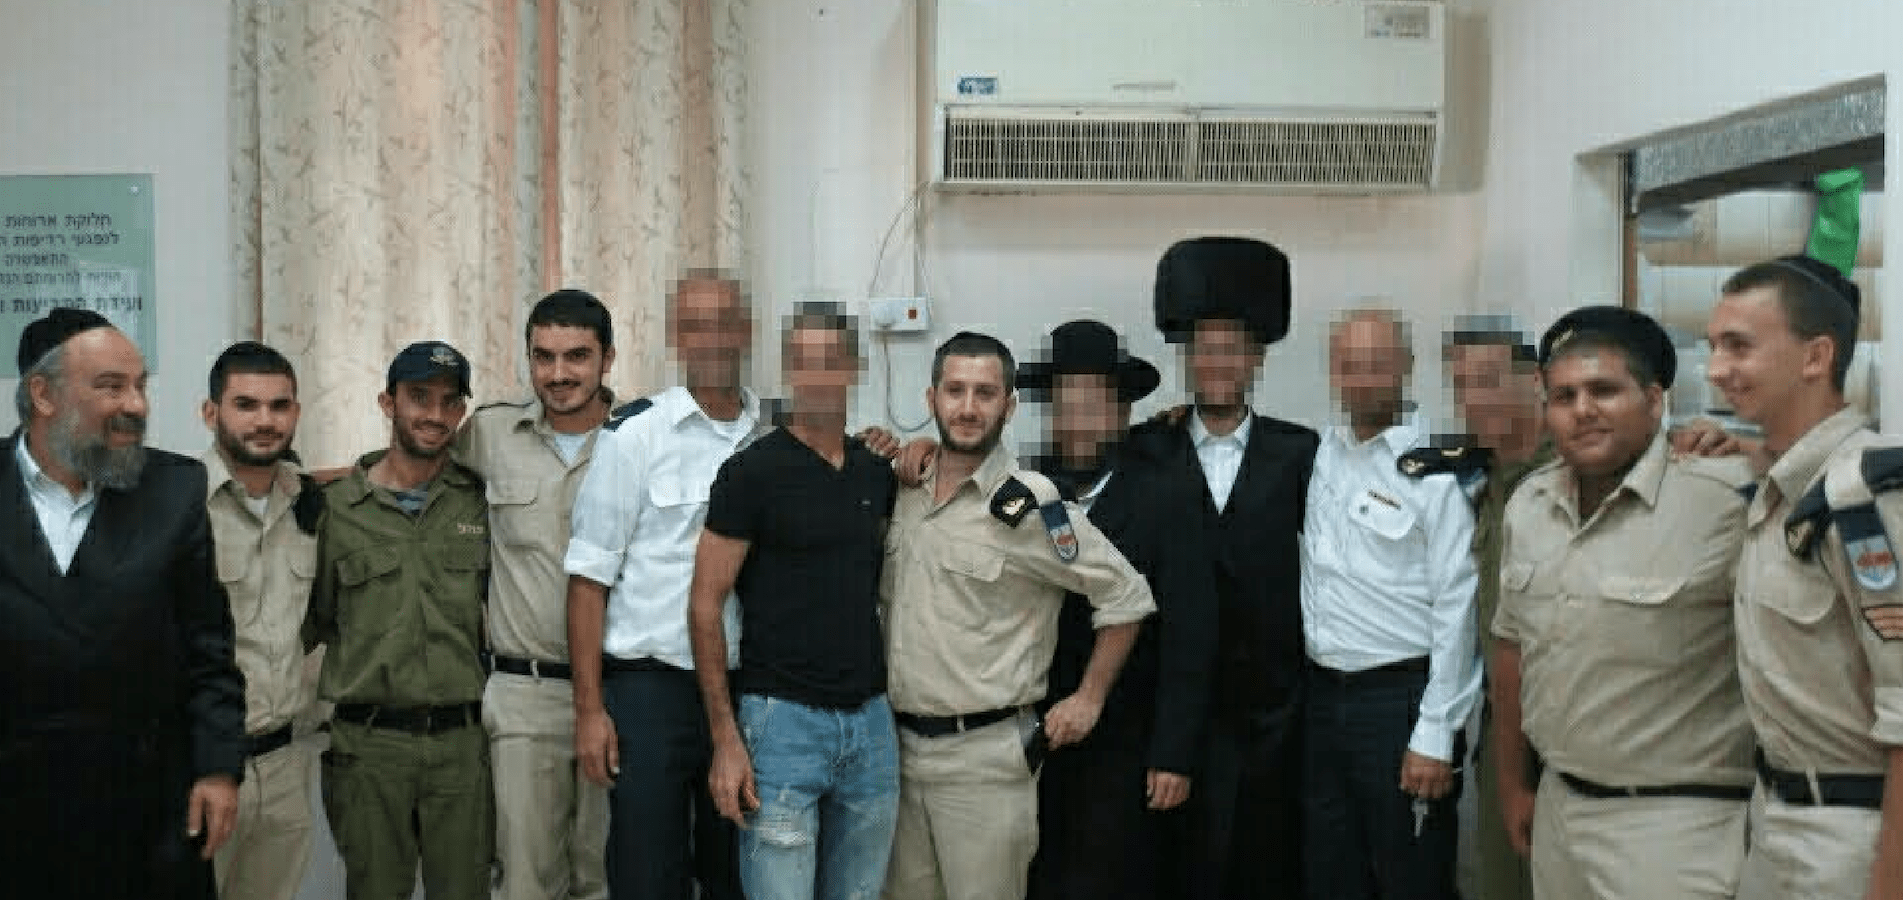 I'm A Hasid Who Joined the IDF. Here's Why.